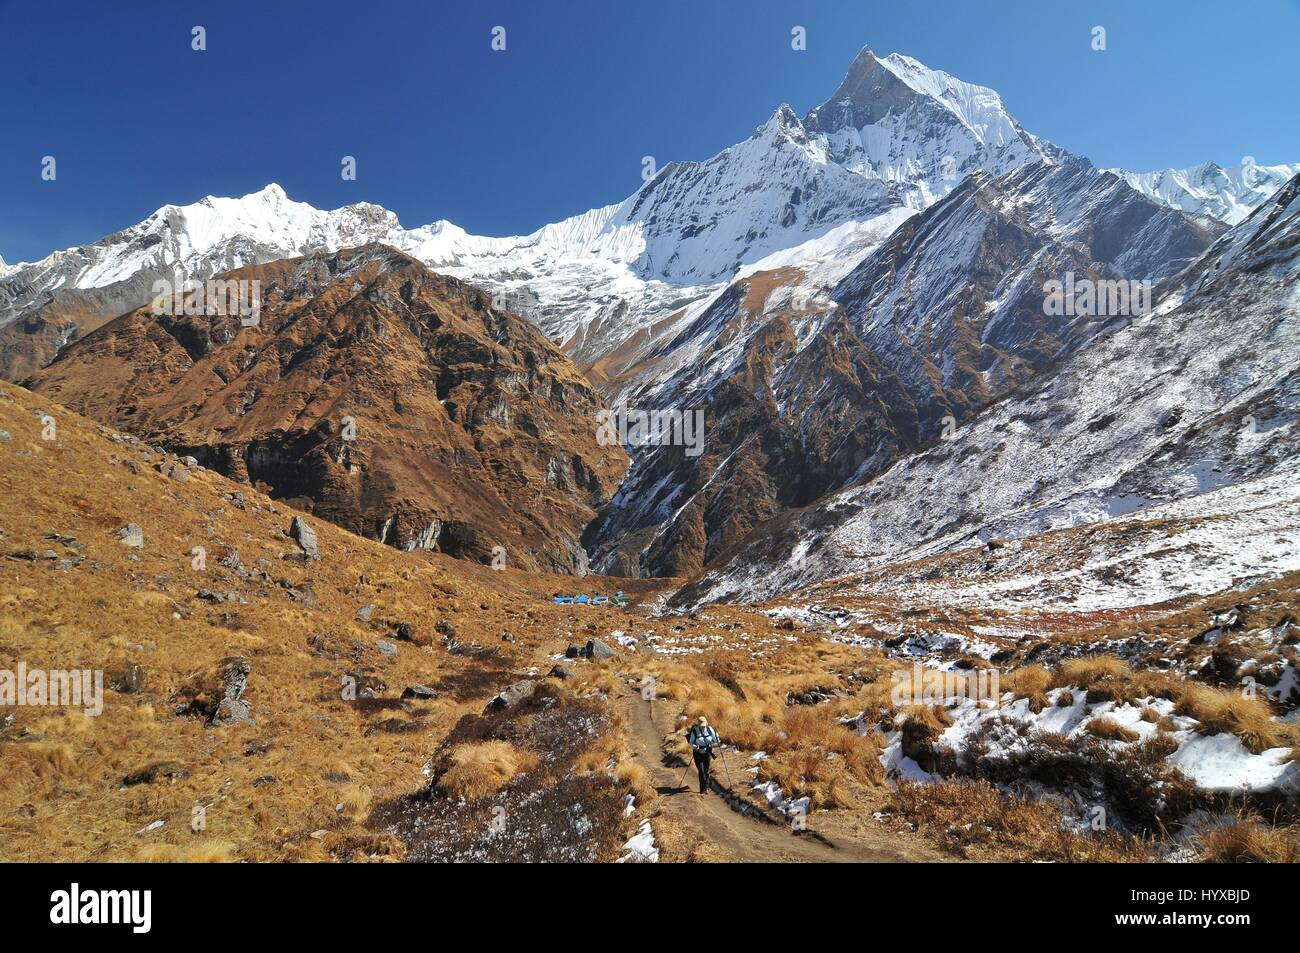 Nepal, Annapurna Conservation Area, Trek to Annapurna Base Camp in Nepal Himalaya Stock Photo